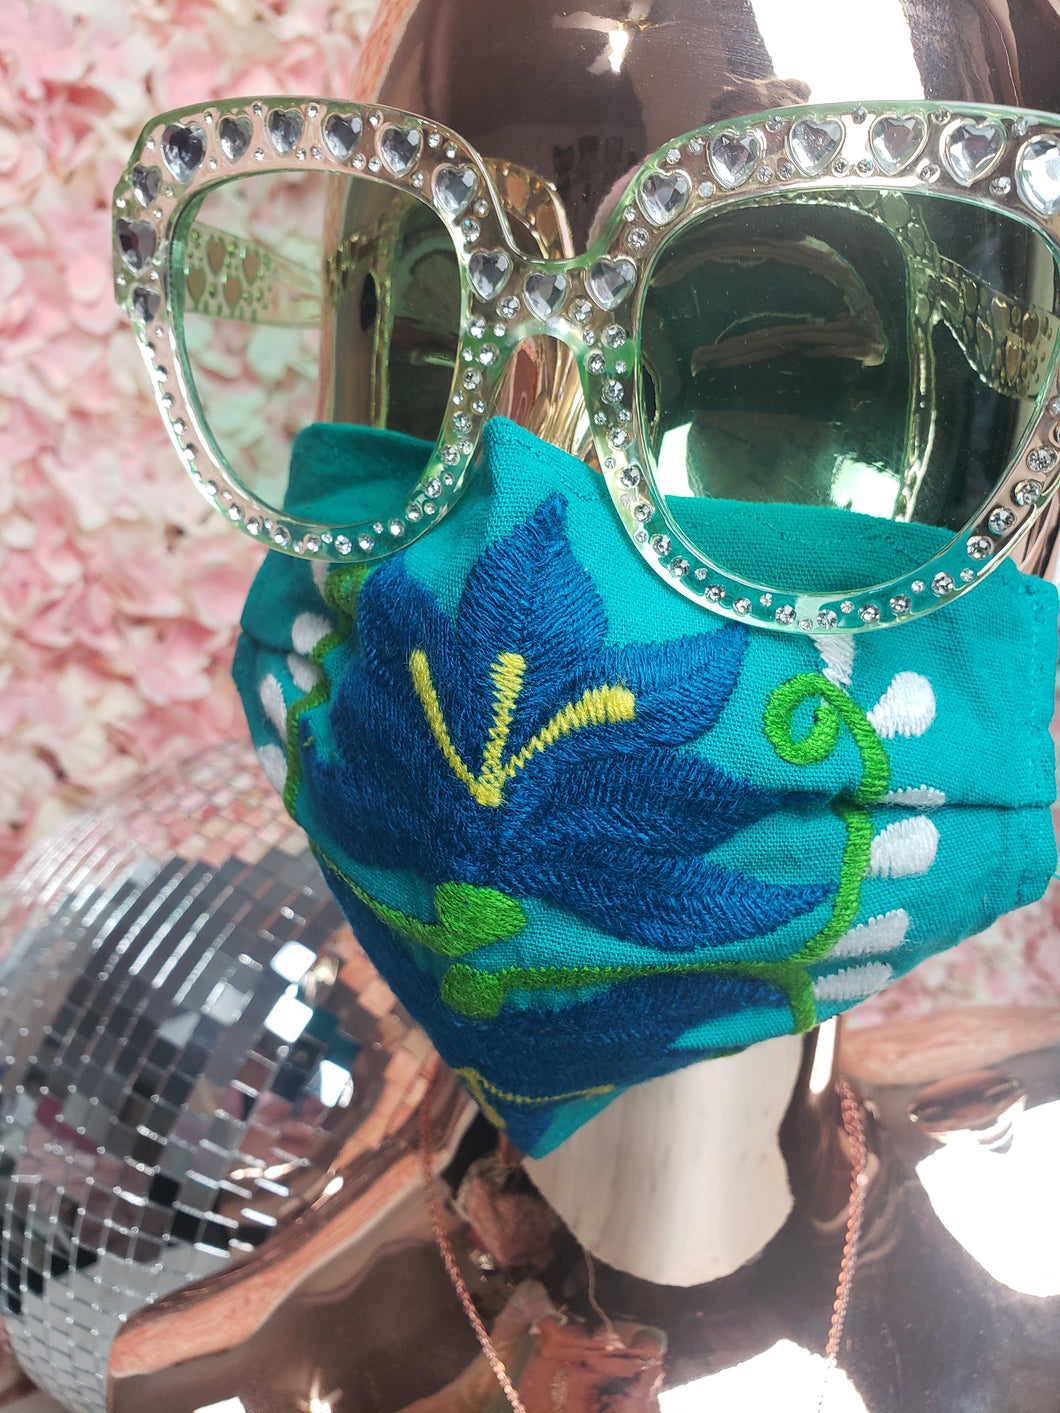 Teel, Navy, Green & White Floral Embroidery Mask